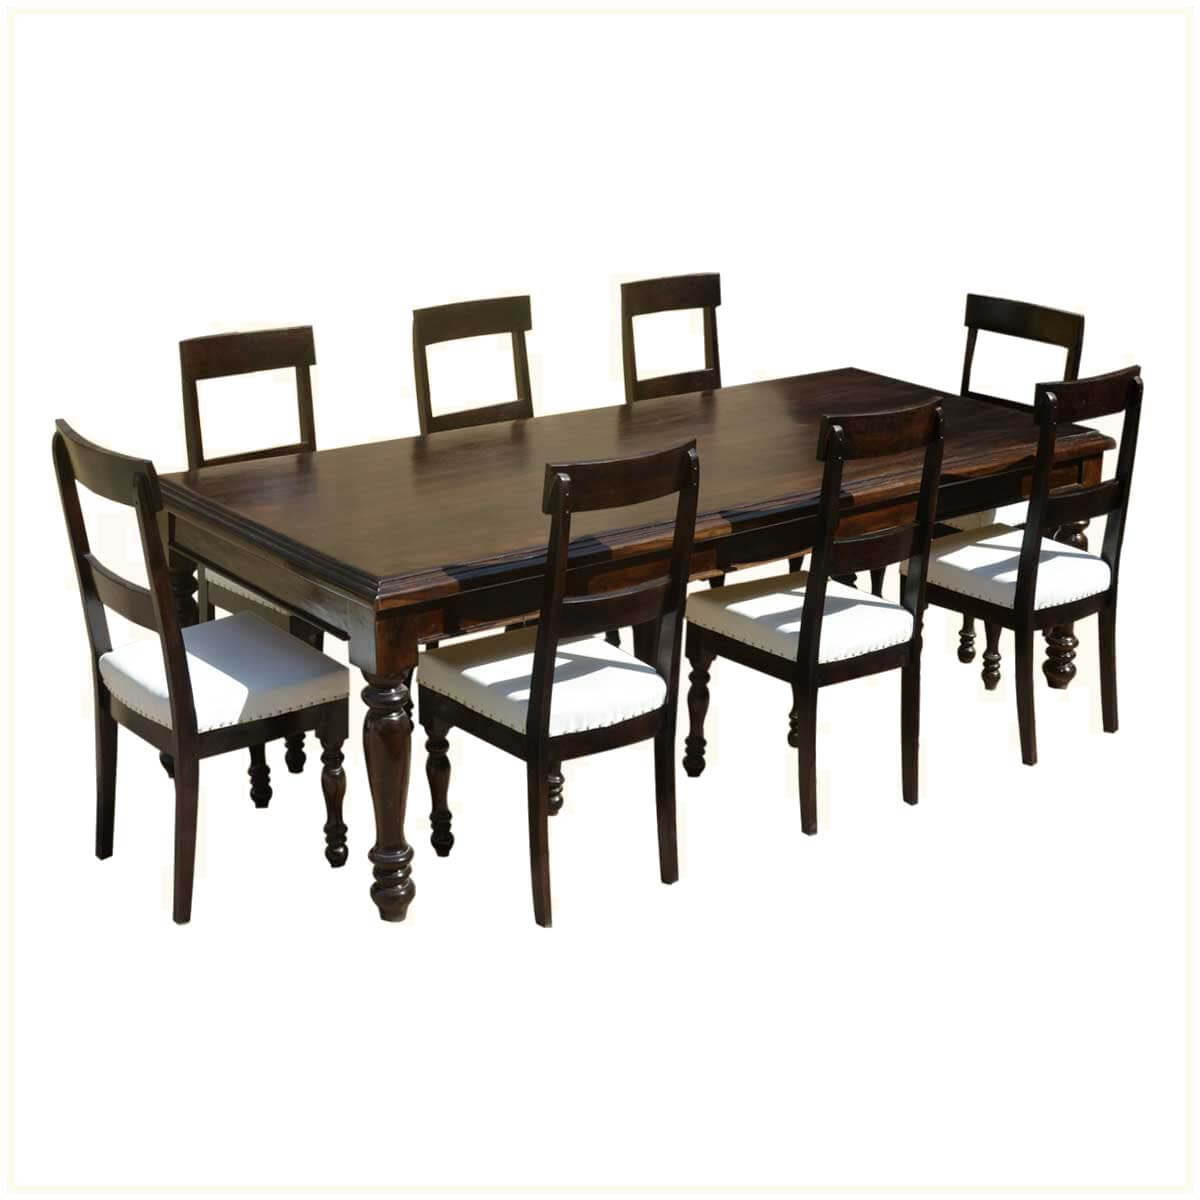 American acacia wood dining table leather upholstered chairs for Leather upholstered dining chairs